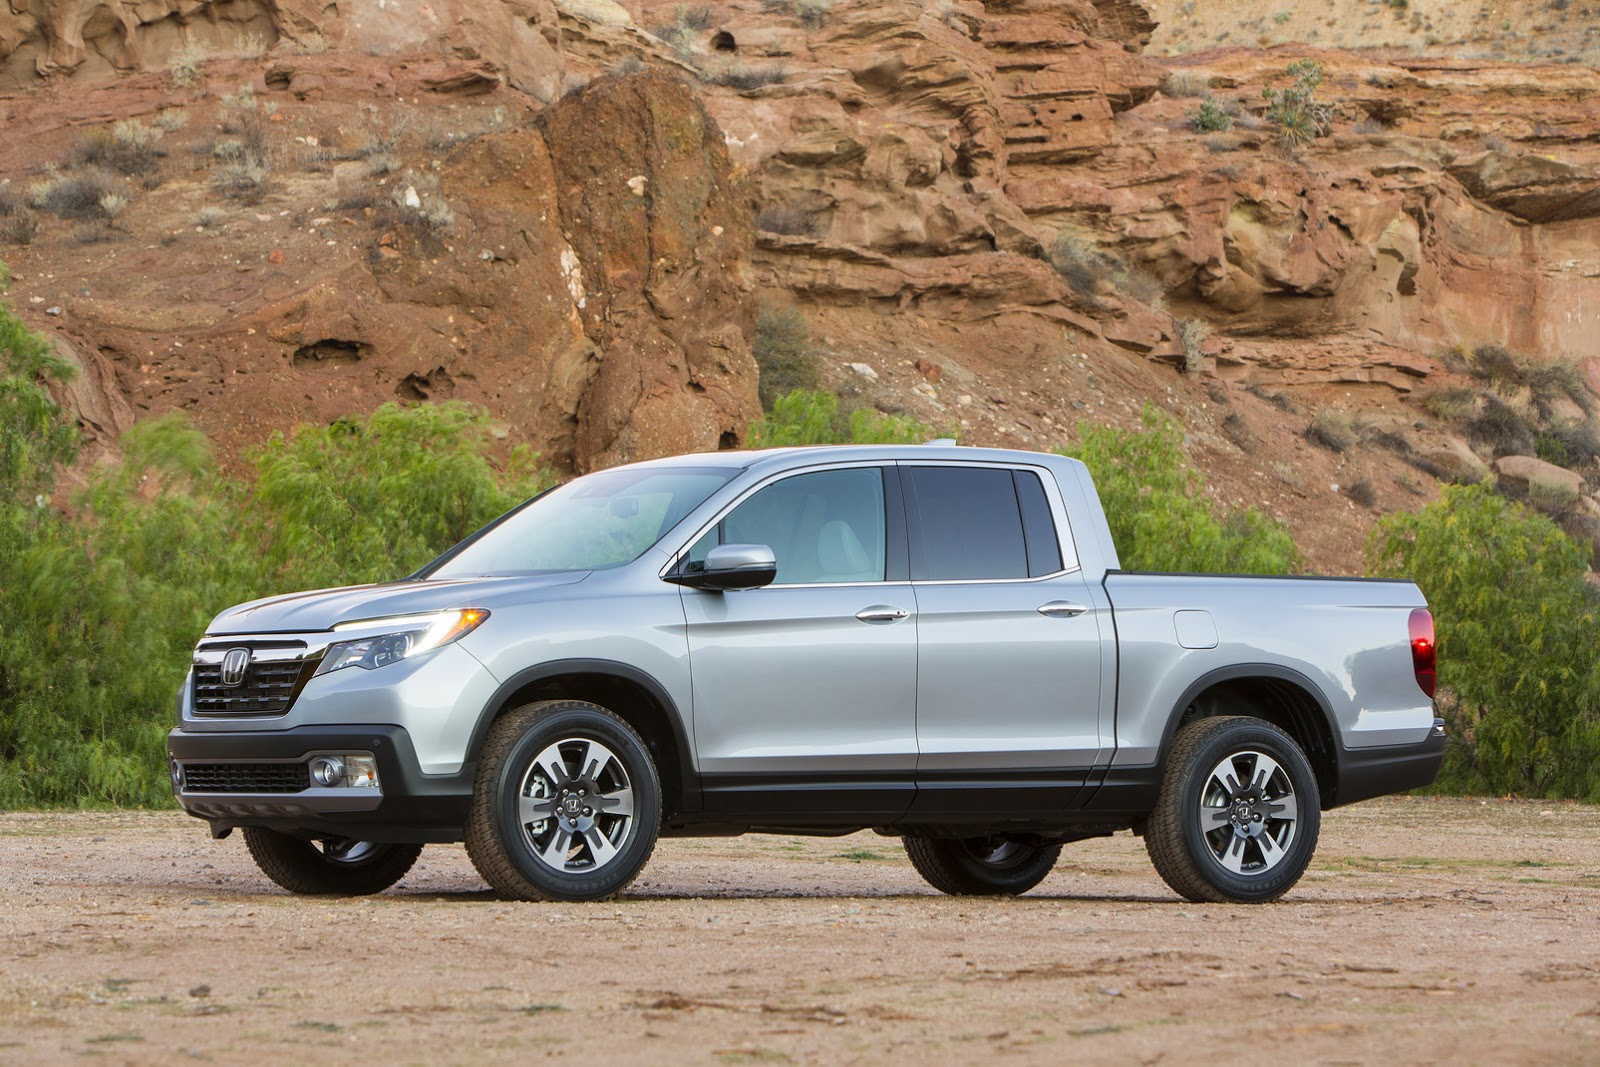 2017 ridgeline is honda s new soft pickup truck updated gallery. Black Bedroom Furniture Sets. Home Design Ideas